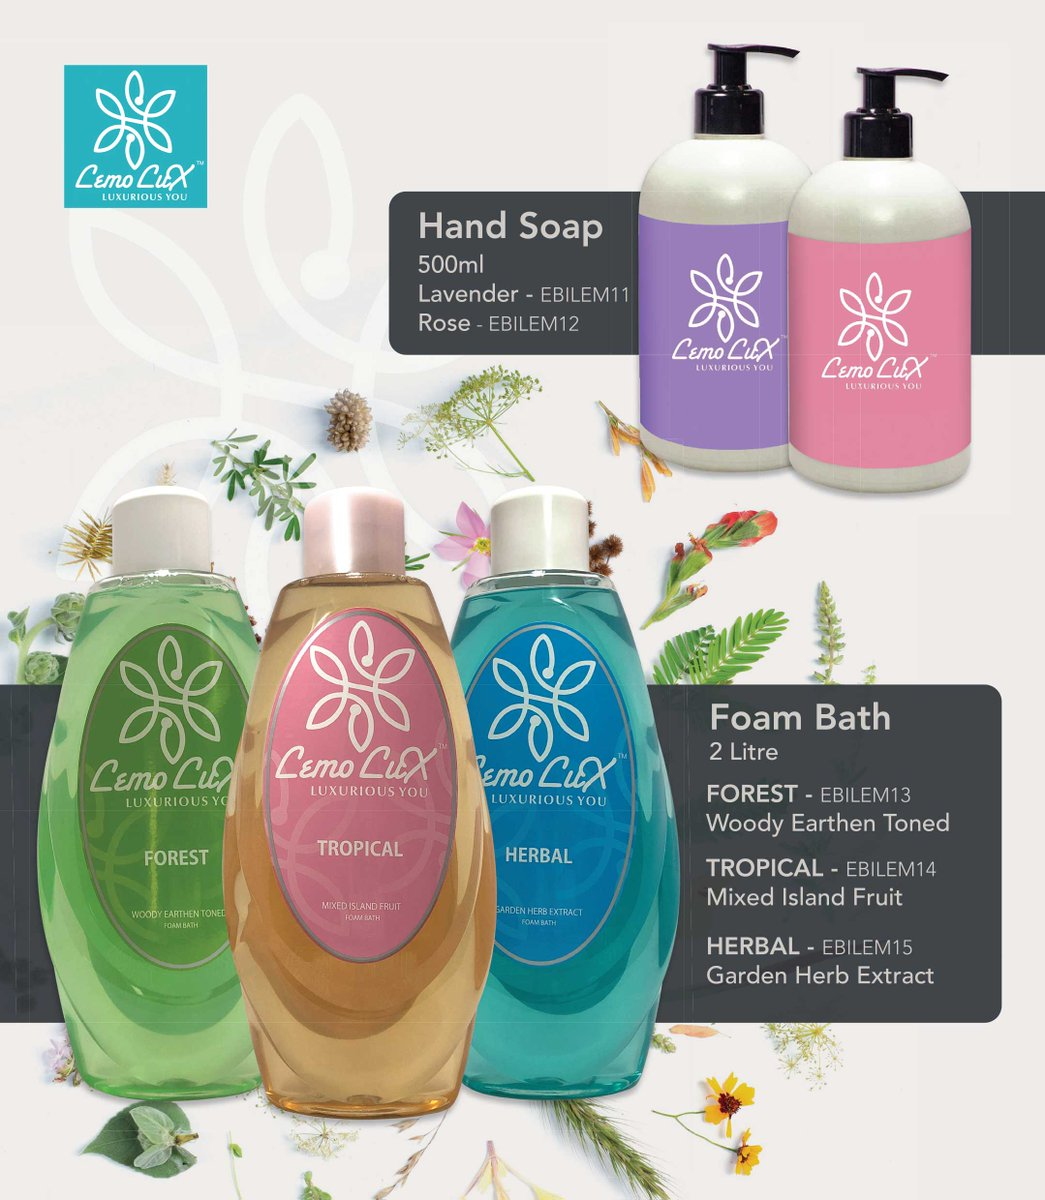 #100%hygiene with lemo lux hand soap Keep your hands clean and scented with Lemo Lux hand soap, Lemo Lux lavender and rose hand soap removes germs and keeps your hands clean and refreshed.  #Lemoluxhandsoap  #Mylemolux  @chemfresh SA @chemfresh_SA  info@chemfresh.co.za https://t.co/fqqjcWvlZJ